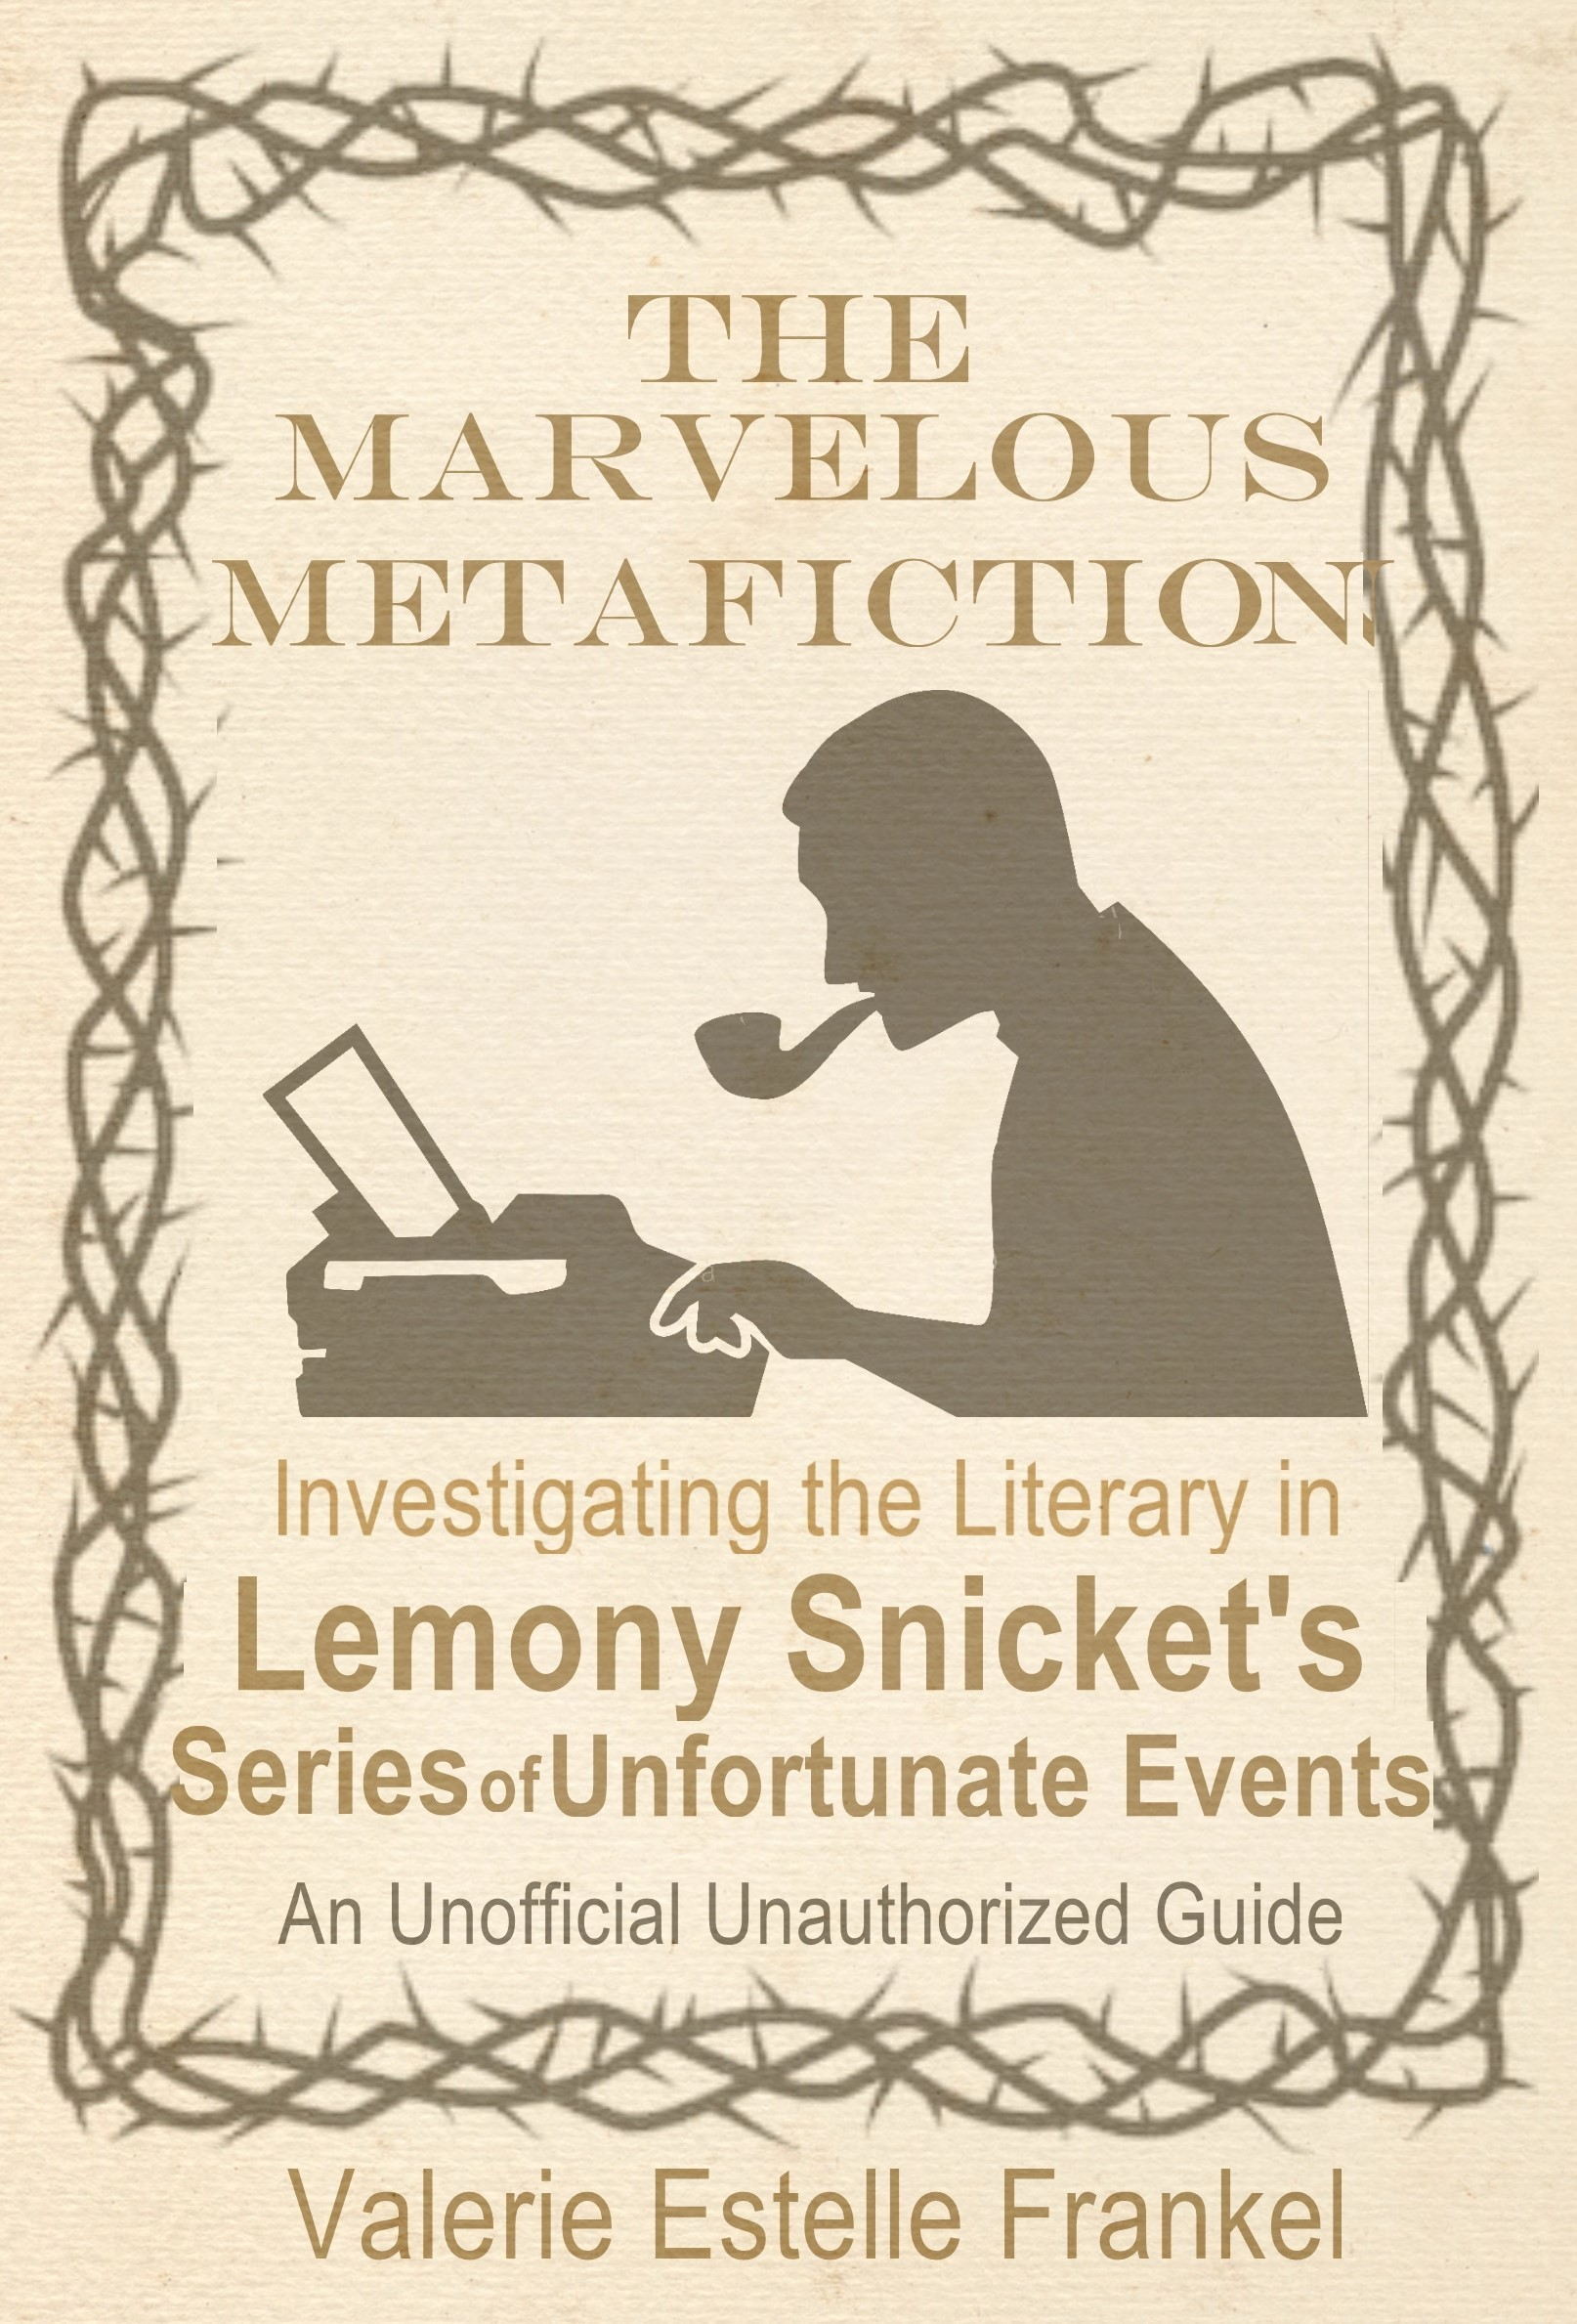 The Marvelous Metafiction: Investigating the Literary in Lemony Snicket's Series of Unfortunate Events